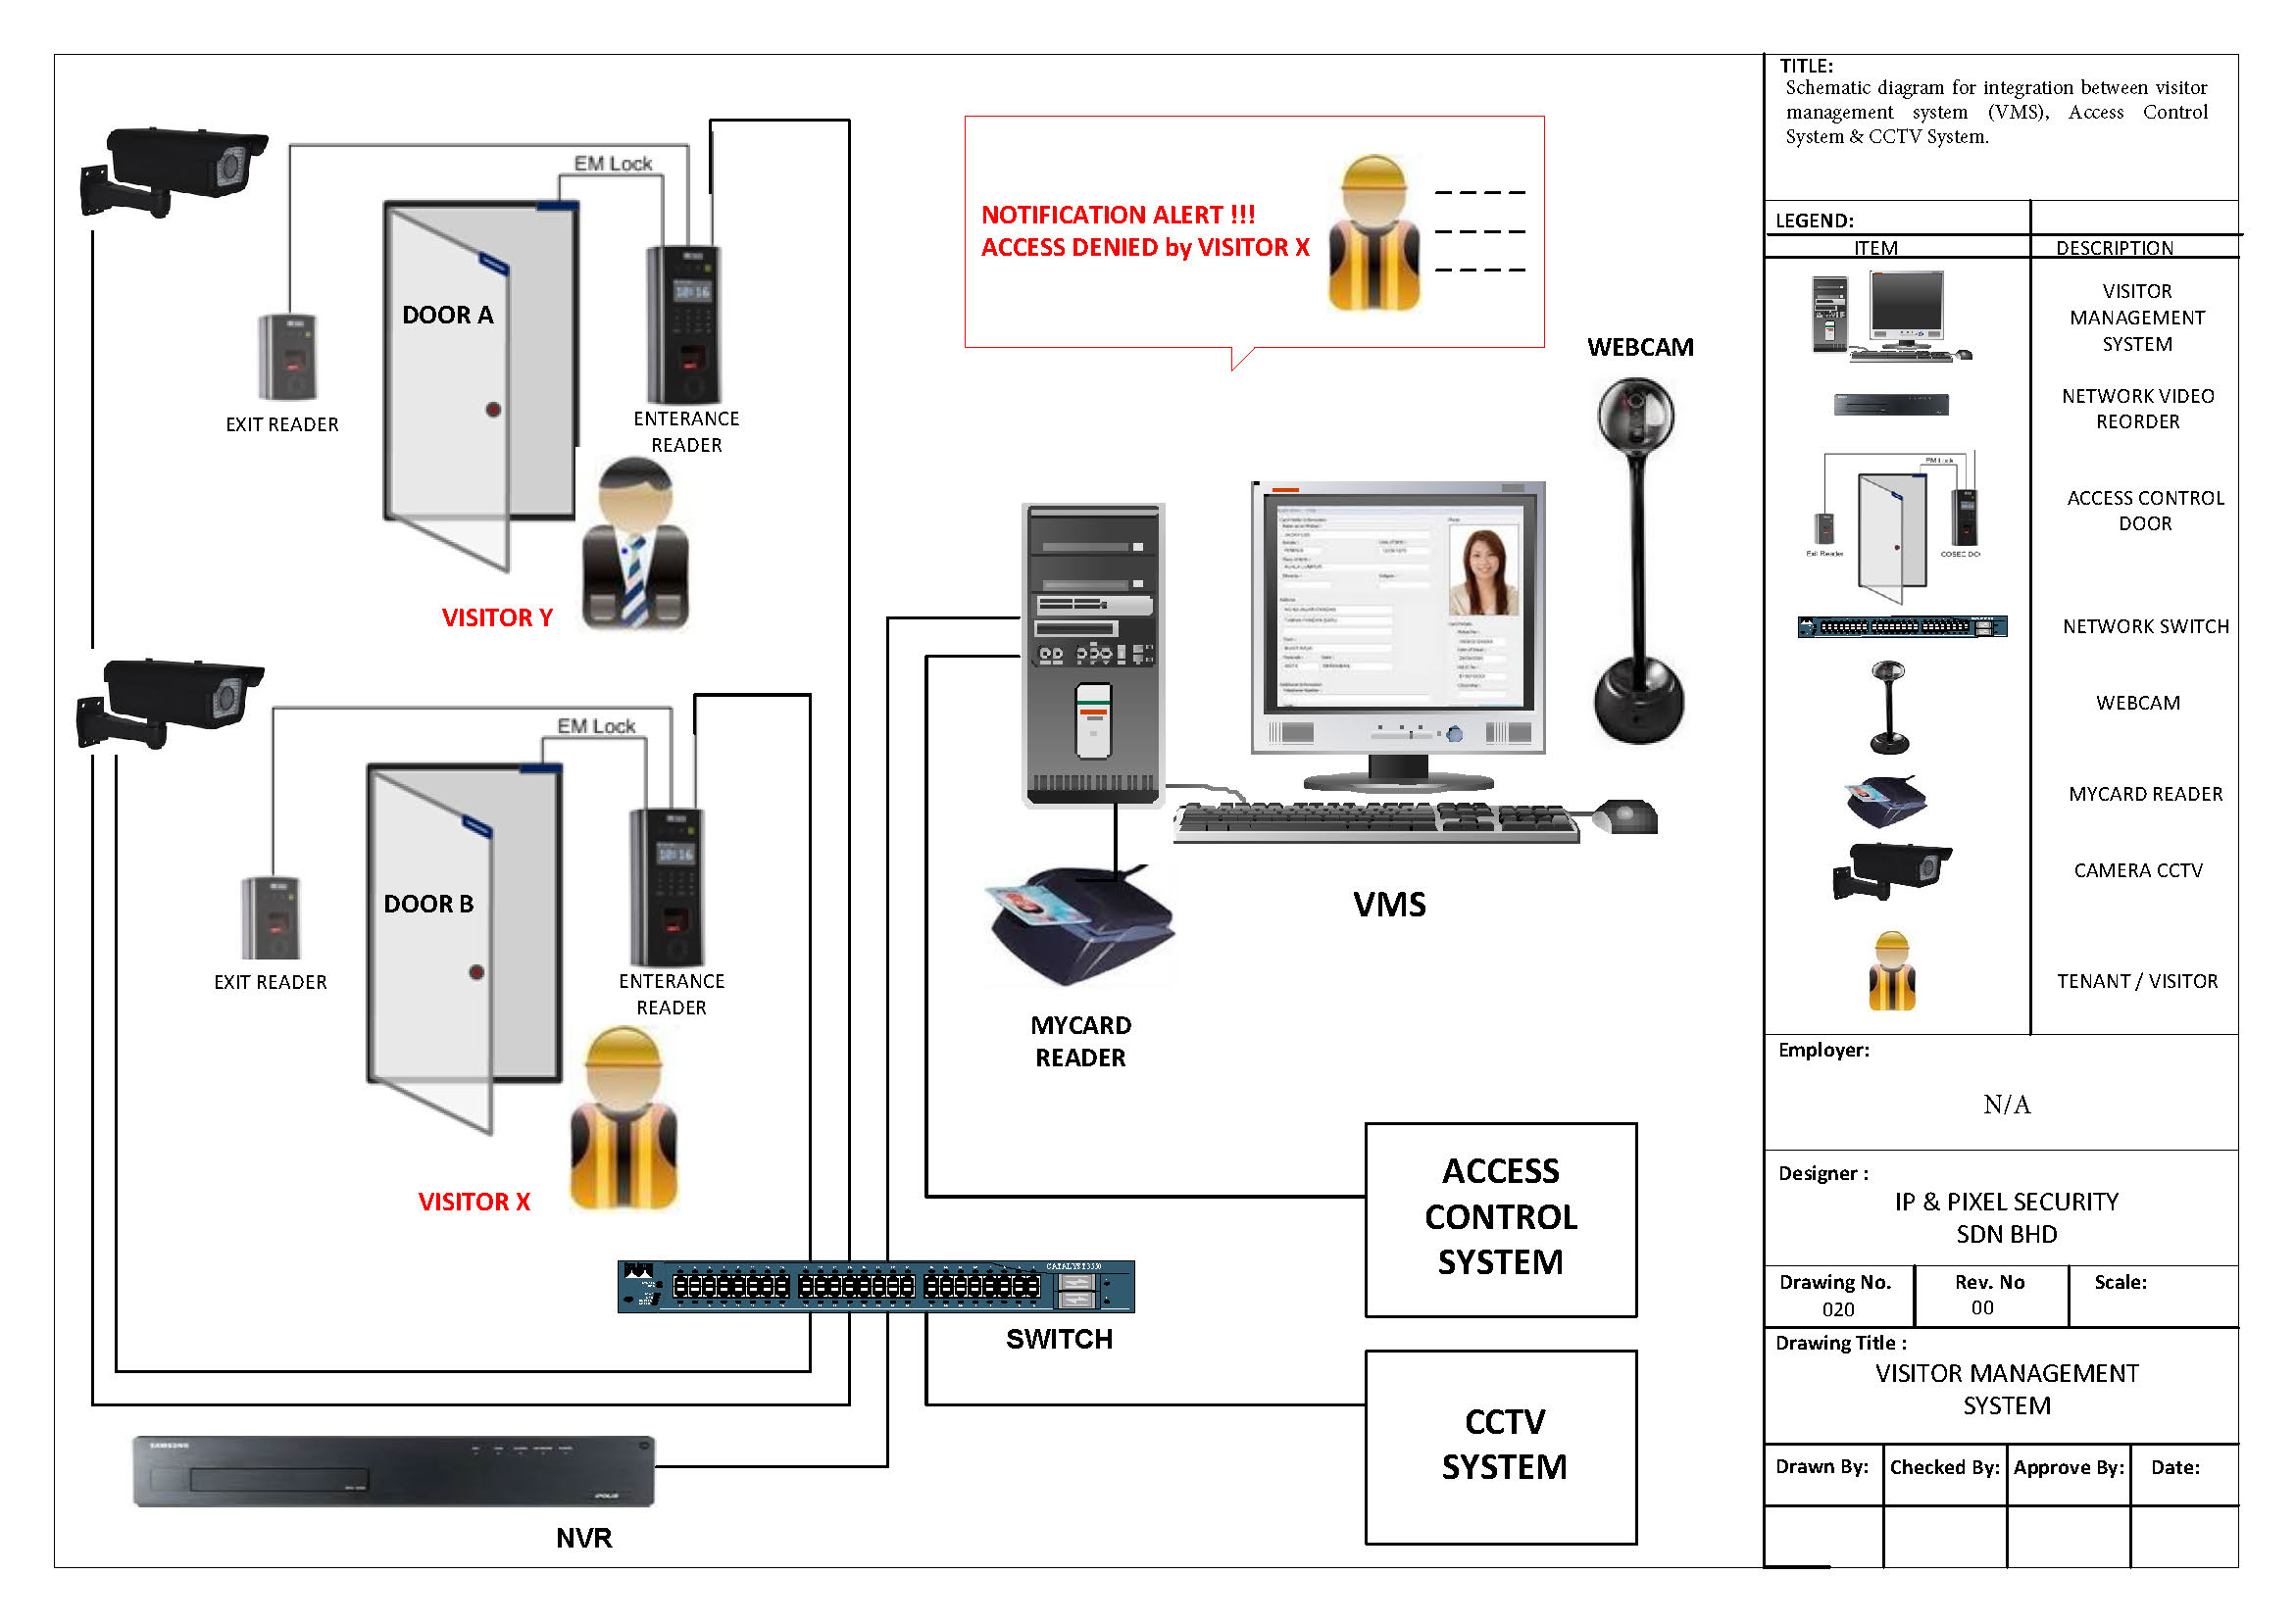 Wiring Diagram For Security Camera - Auto Electrical Wiring ... on